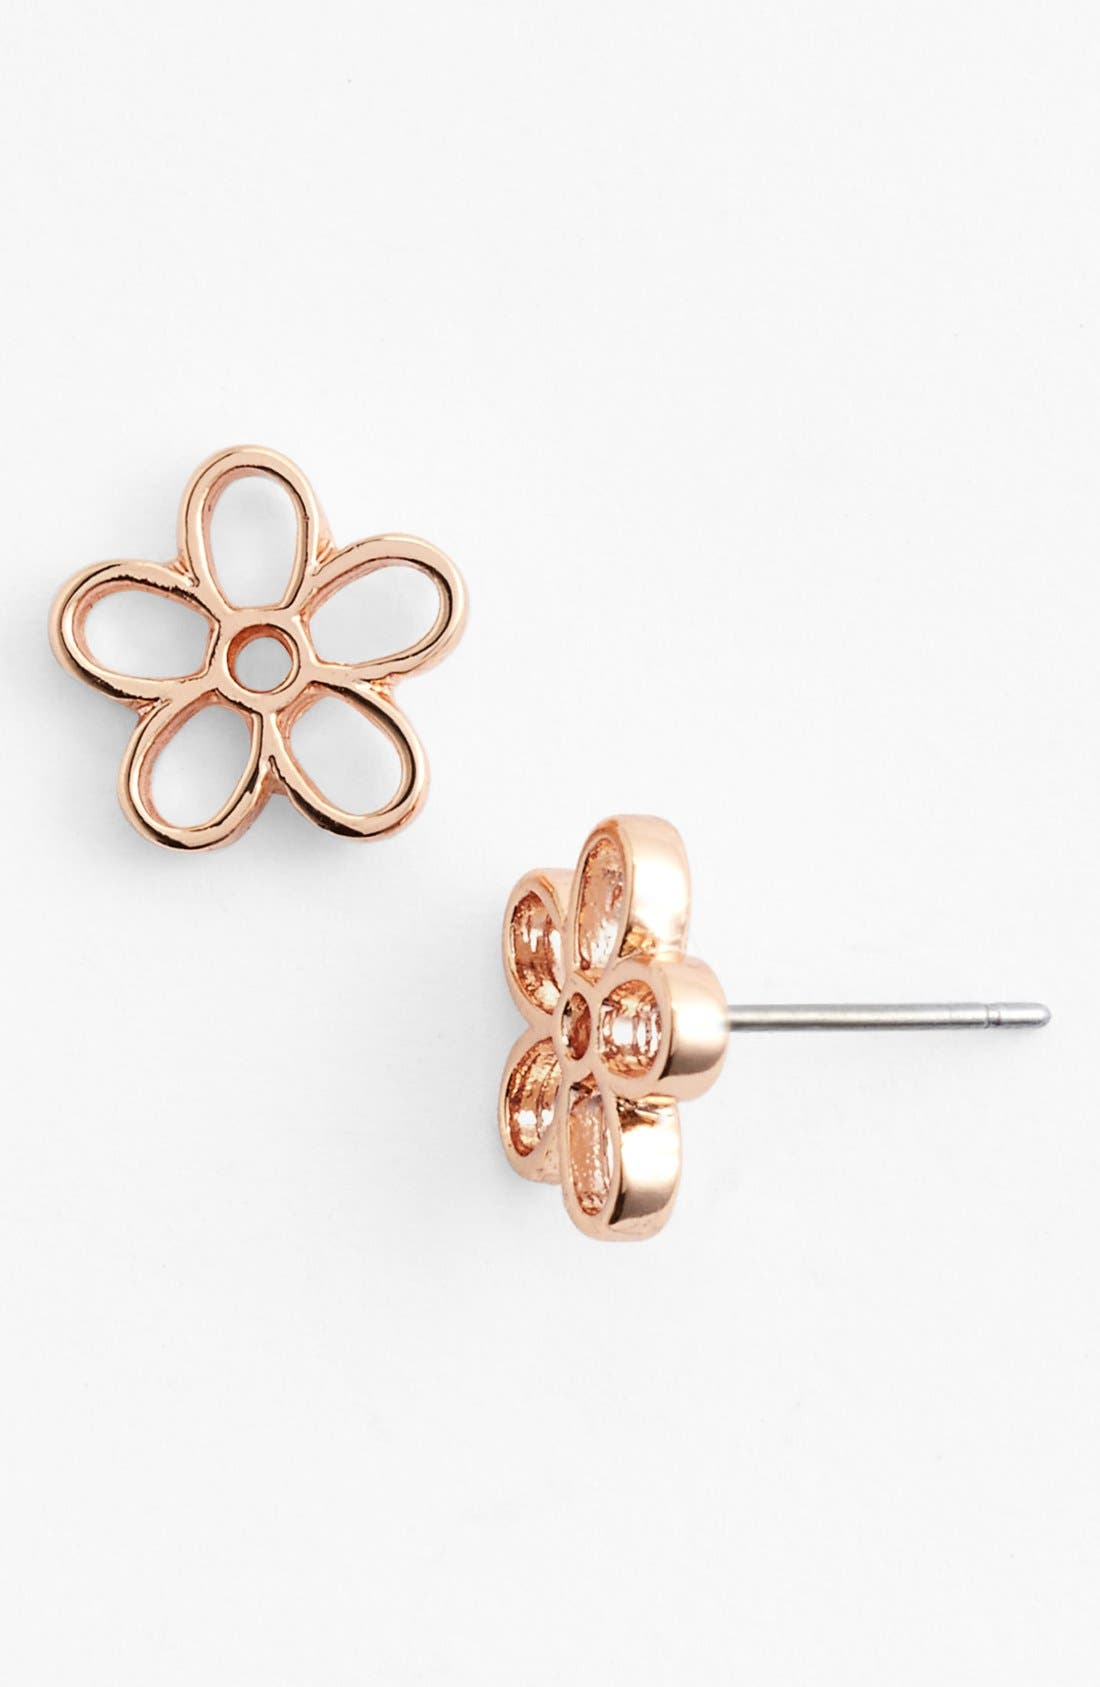 Daisy Stud Earrings,                         Main,                         color, Rose Gold